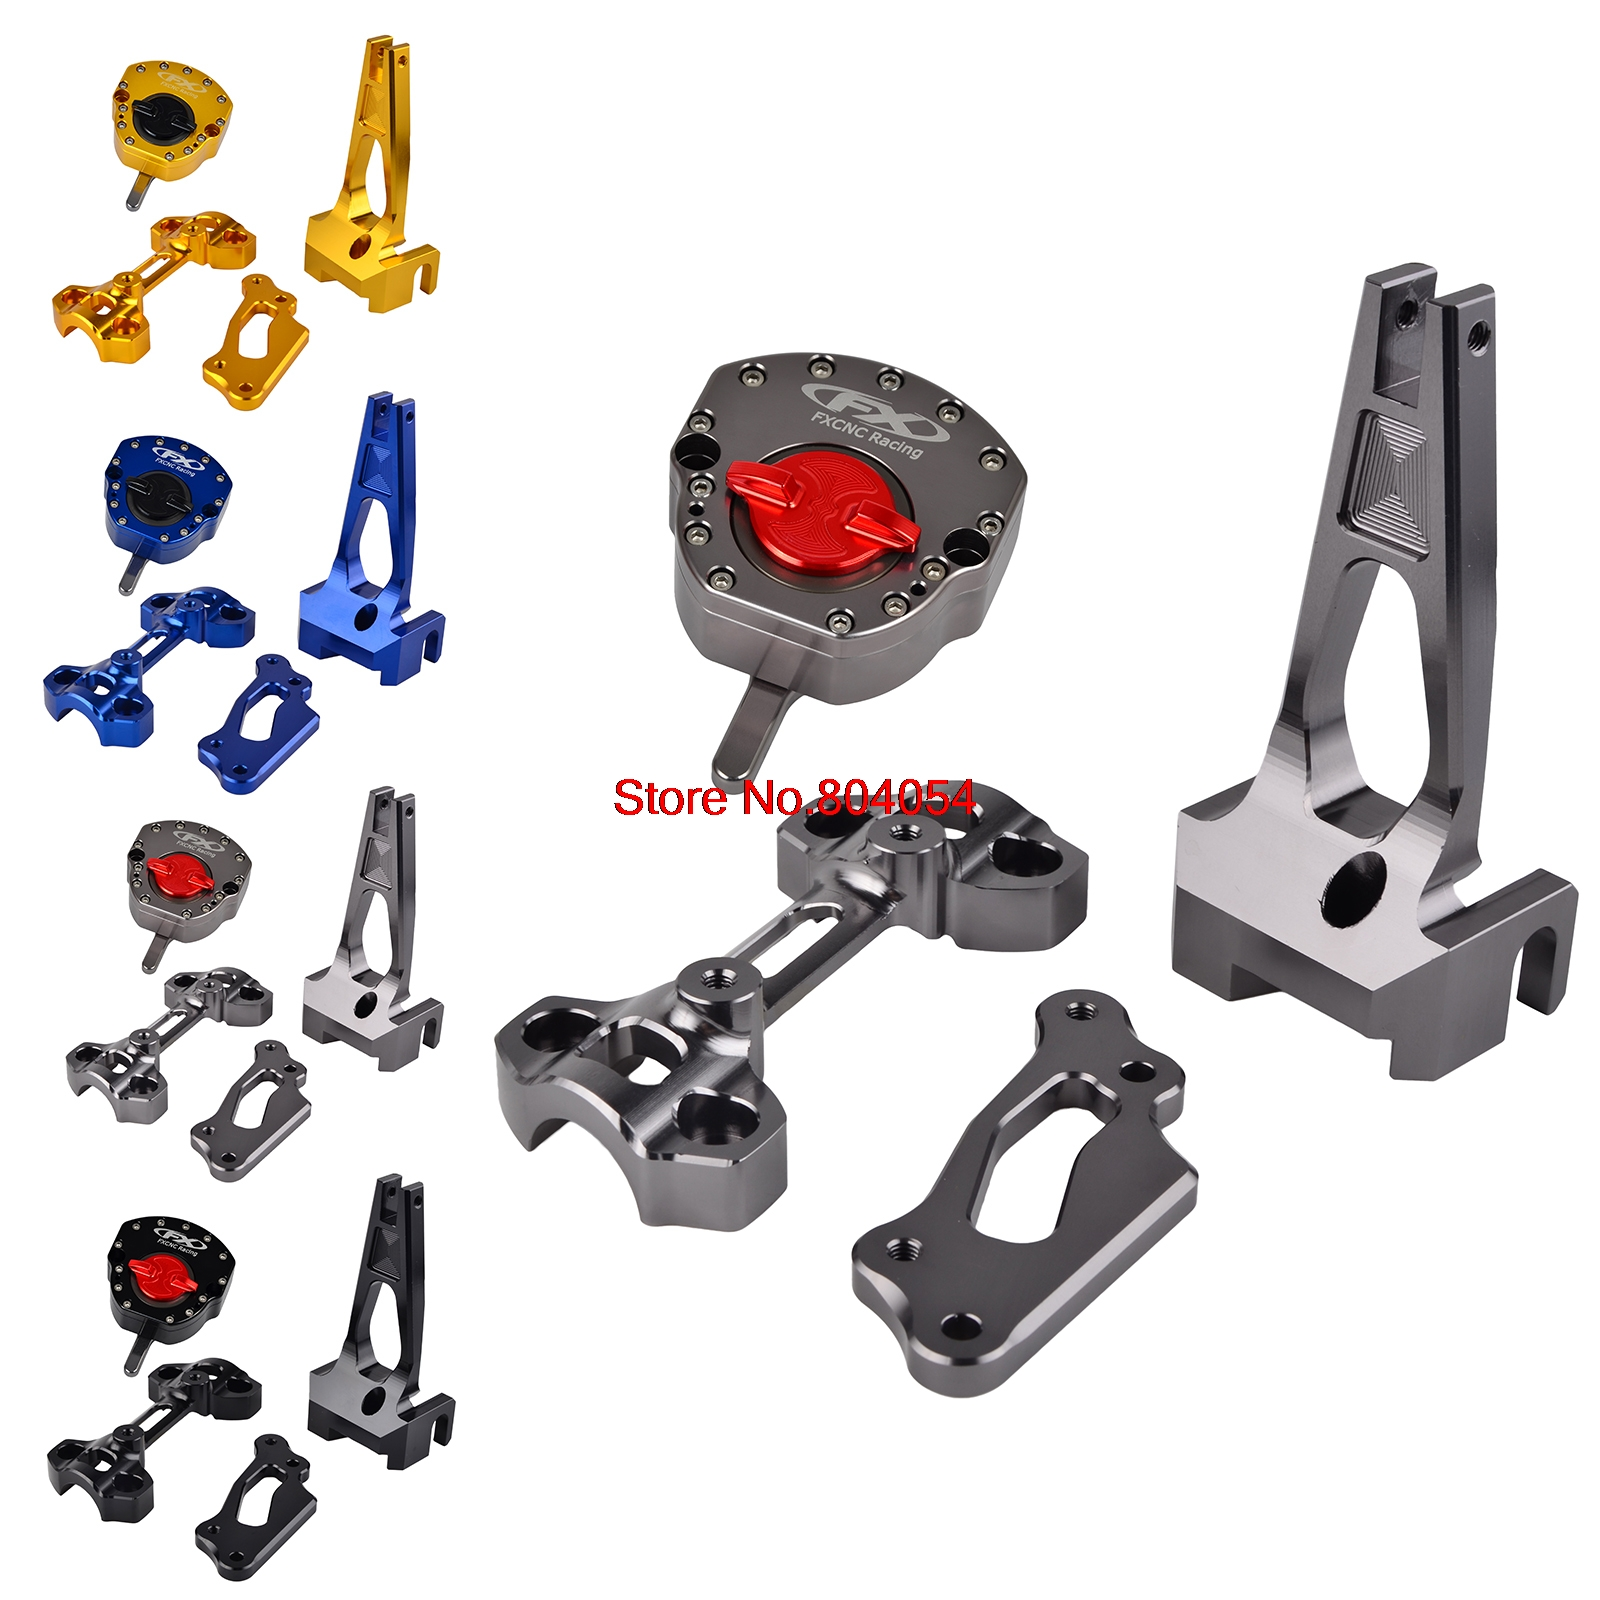 Motorcycle Steering Damper Stabilizer Mount Bracket Kits For Yamaha MT09 MT-09 Street Rally  FZ09 FZ-09 2014 2015 2016 motorcycle steering damper stabilizer with mounting bracket kit for yamaha mt09 mt 09 fz09 fz 09 2014 2015 2016